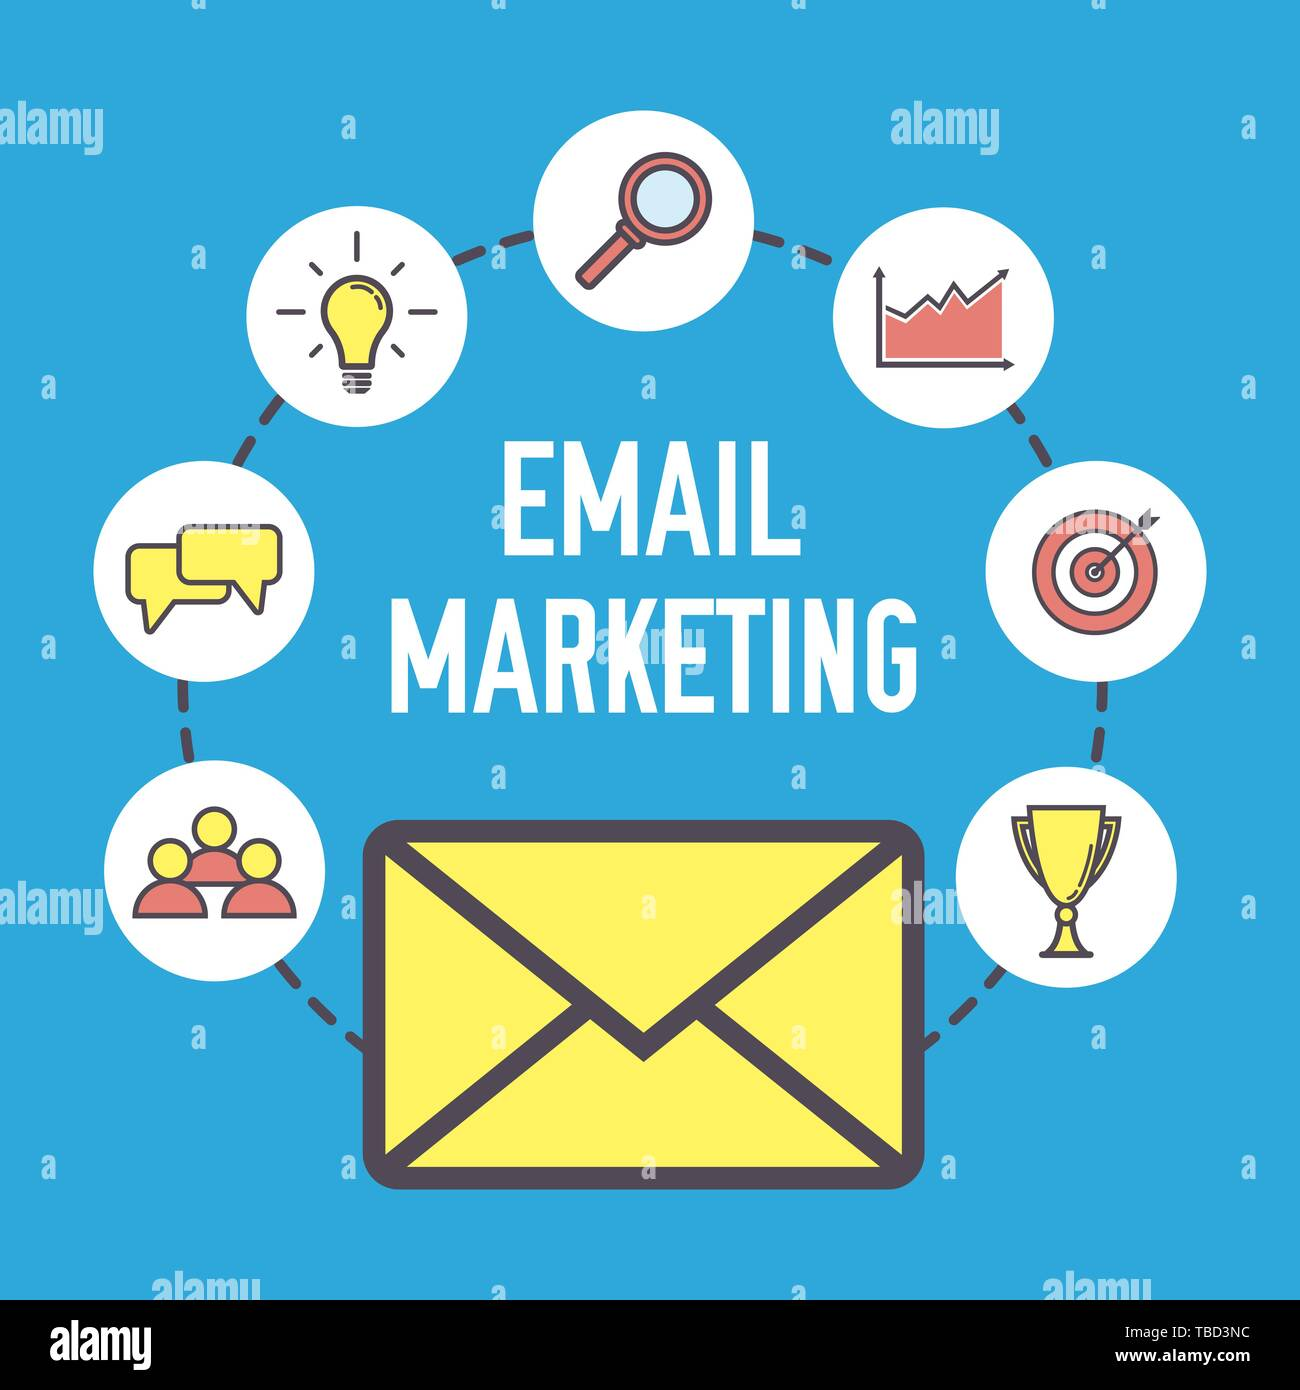 email marketing design flat banner concept with icons digital marketing vector illustration on blue background stock vector image art alamy https www alamy com email marketing design flat banner concept with icons digital marketing vector illustration on blue background image247994696 html